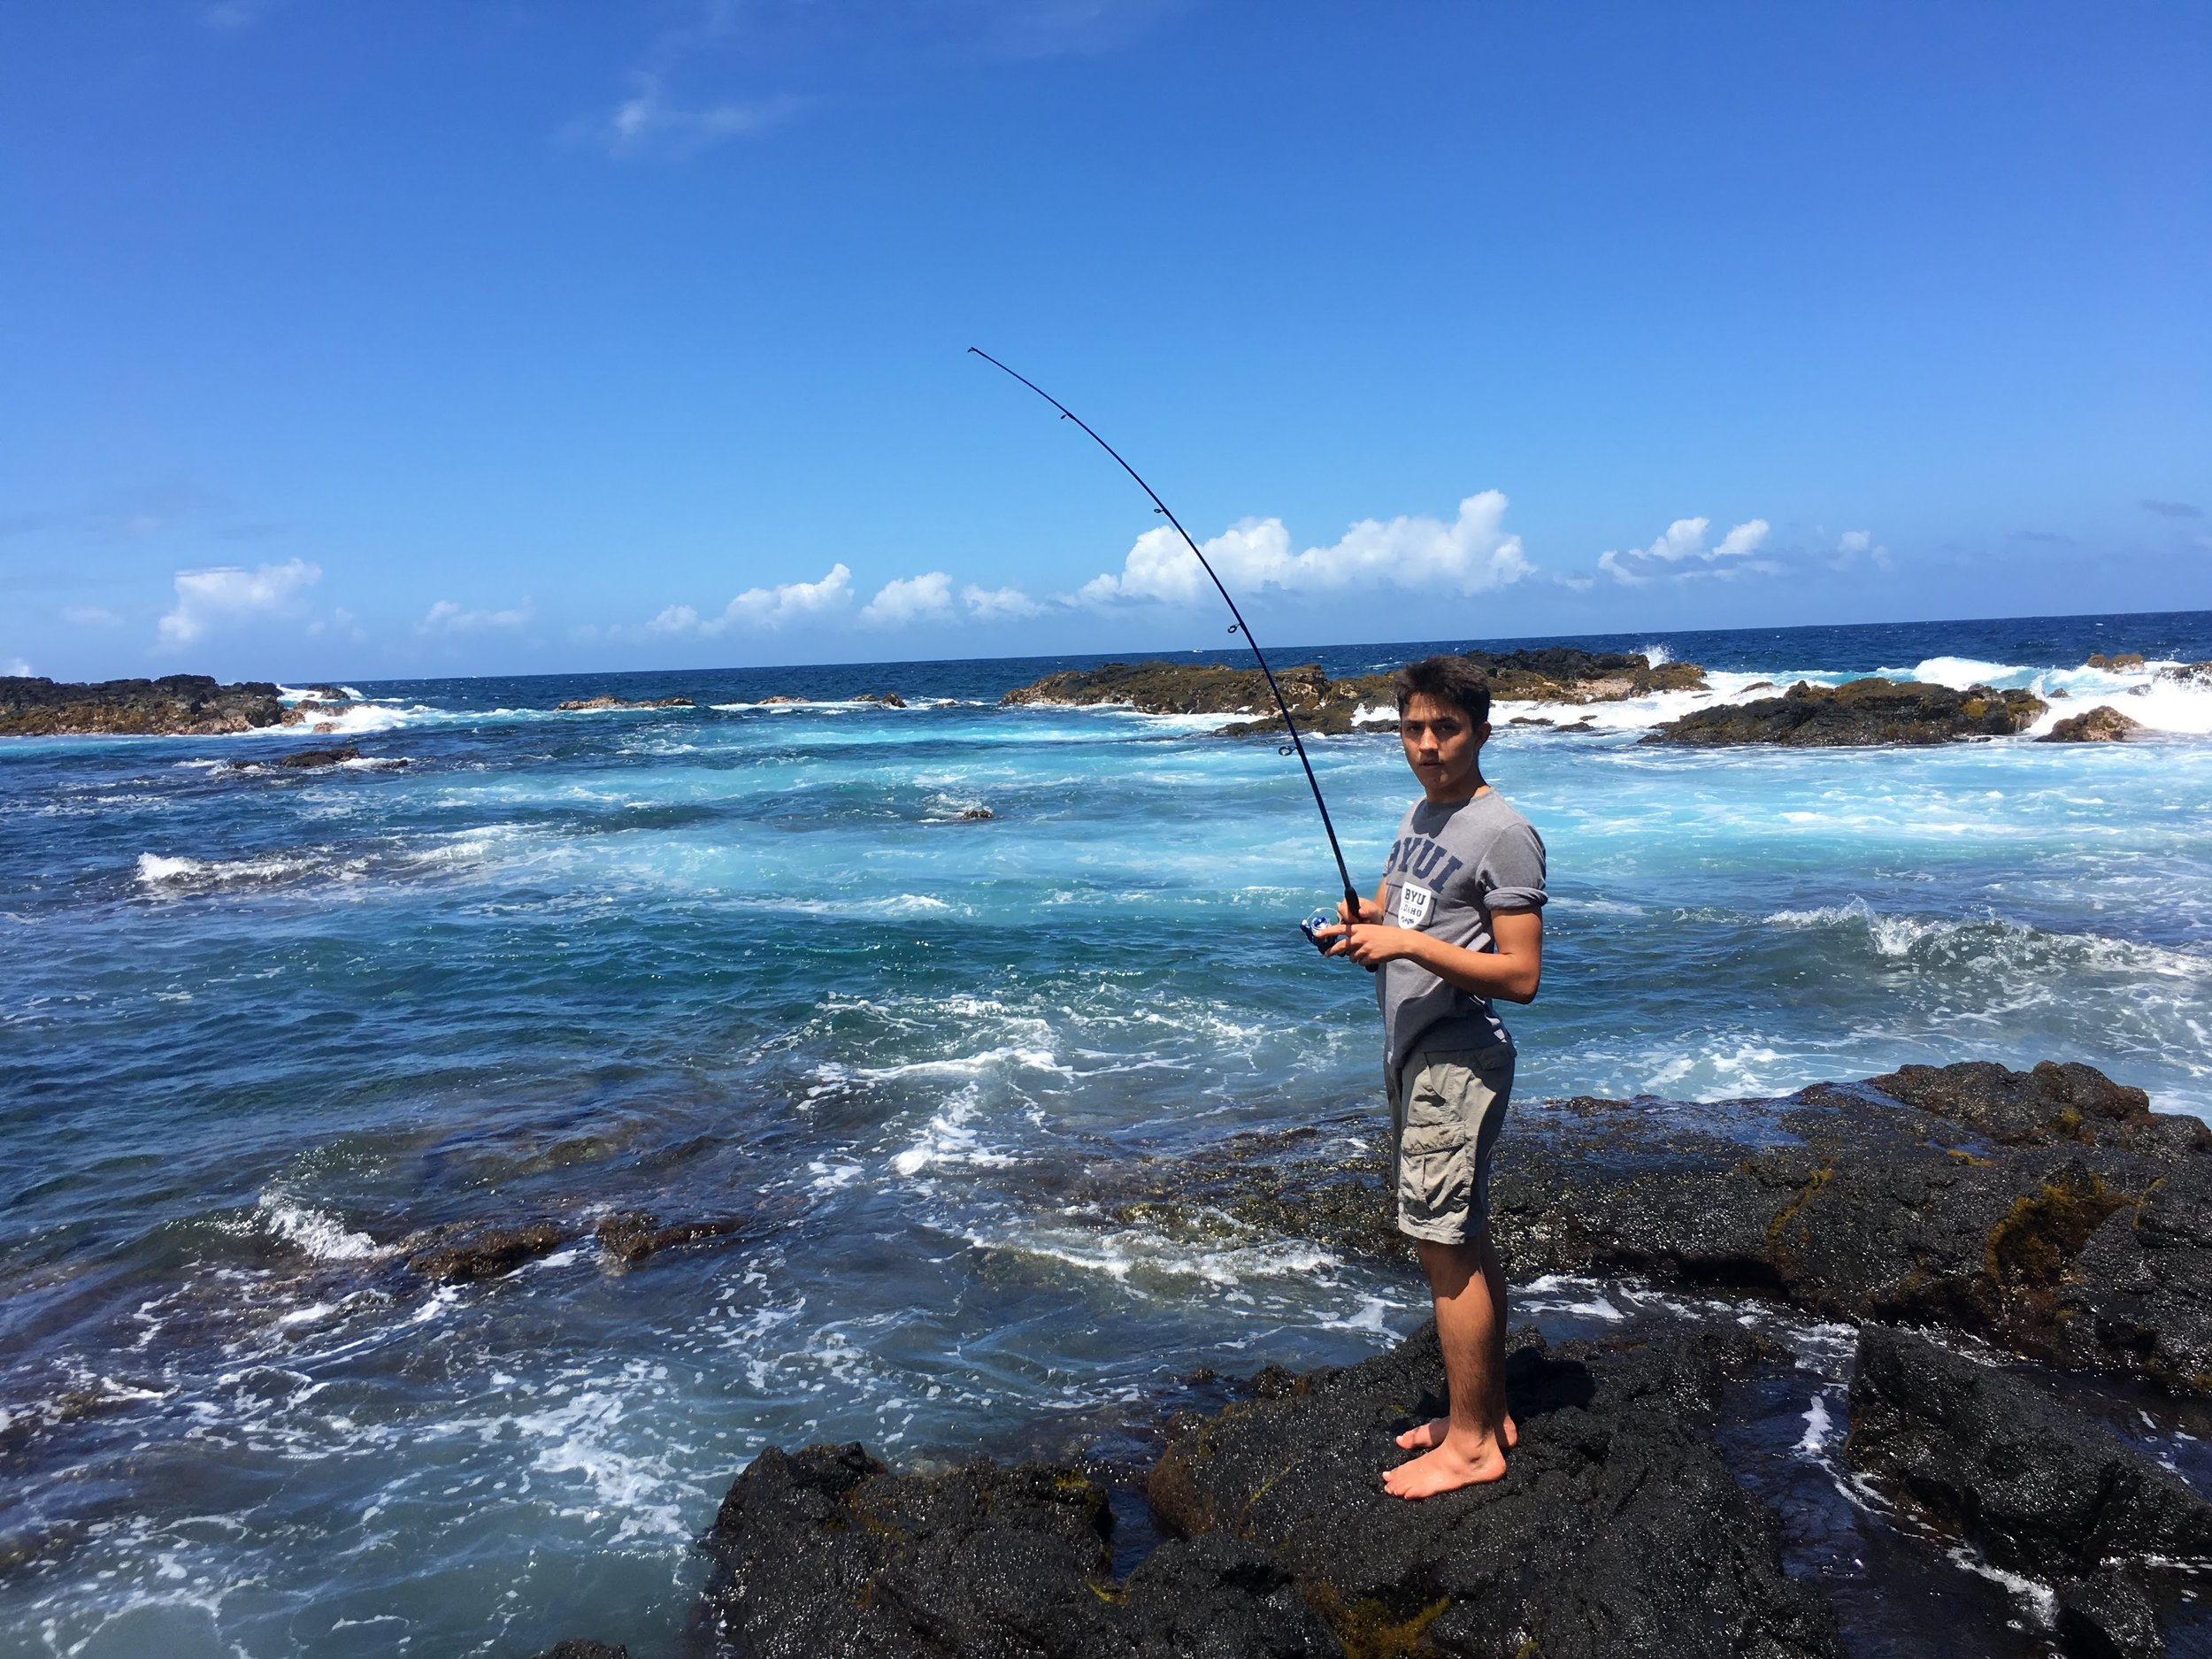 Enoch's Posts - I snagged my line, which is why I like spearfishing :)